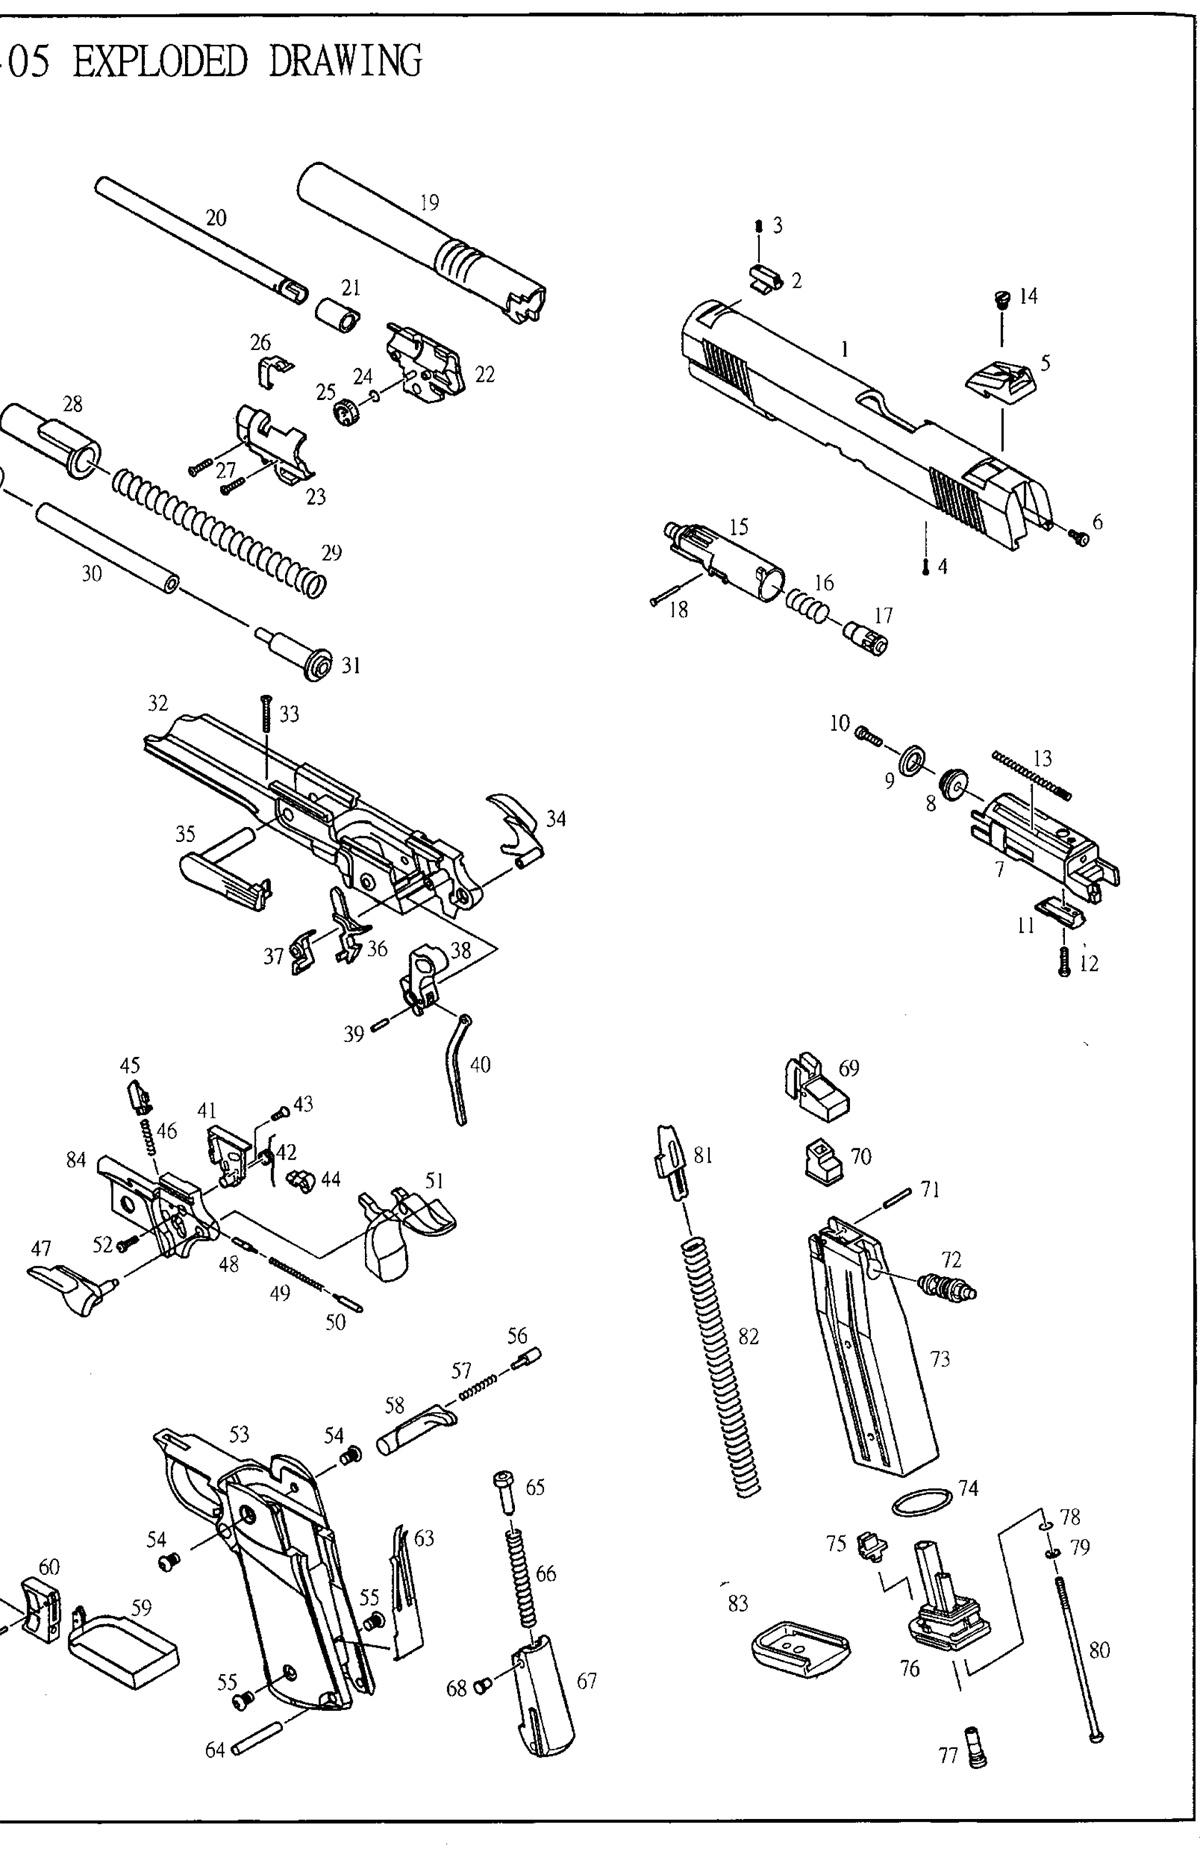 kjw 1911 exploded diagram car wiring diagrams explained u2022 rh ethermag co